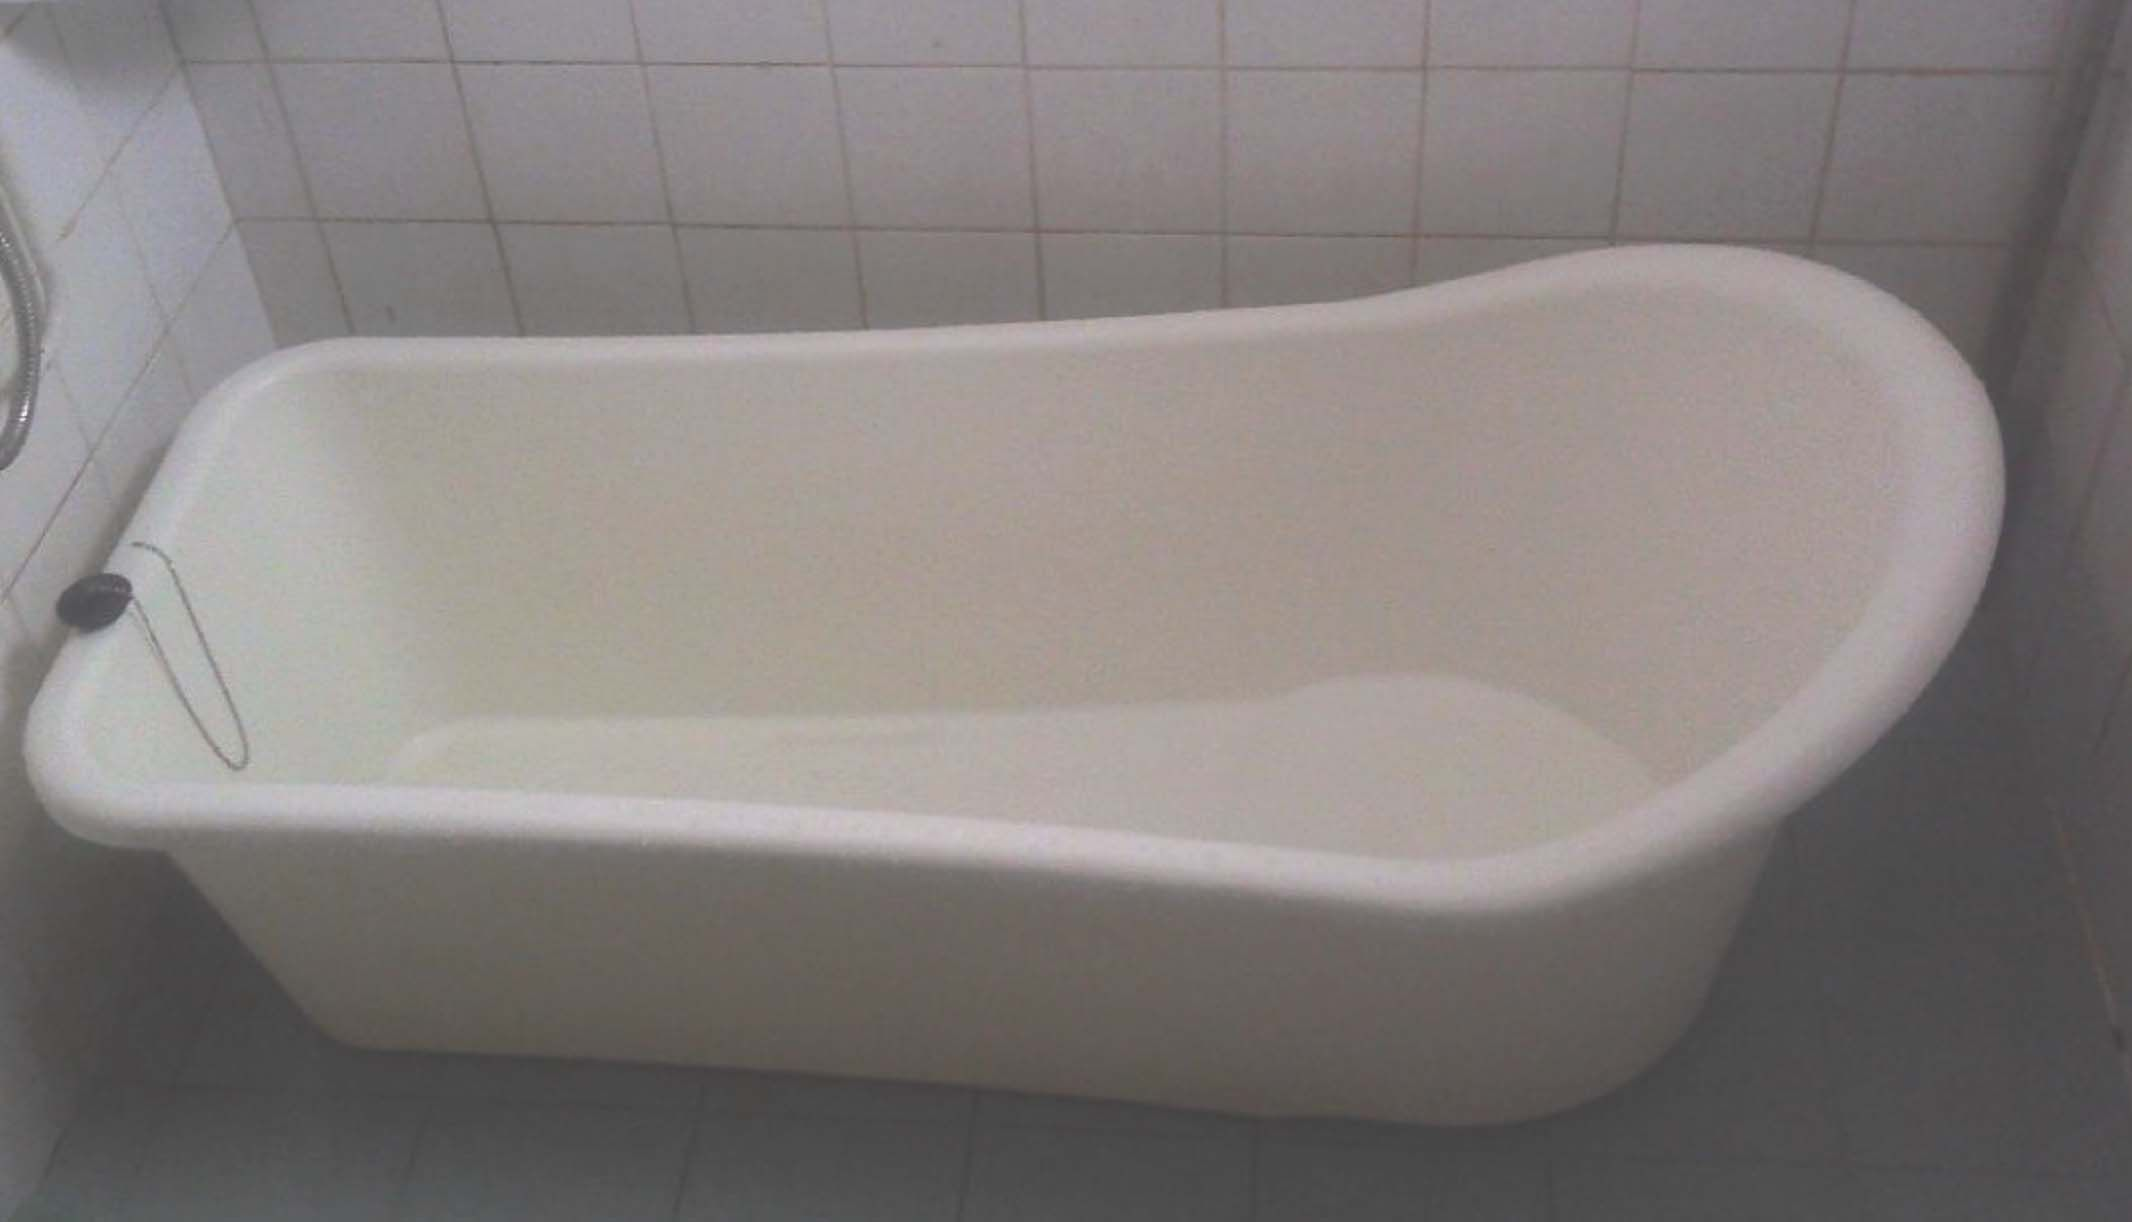 adult portable bathtub | Household | Pinterest | Portable bathtub ...